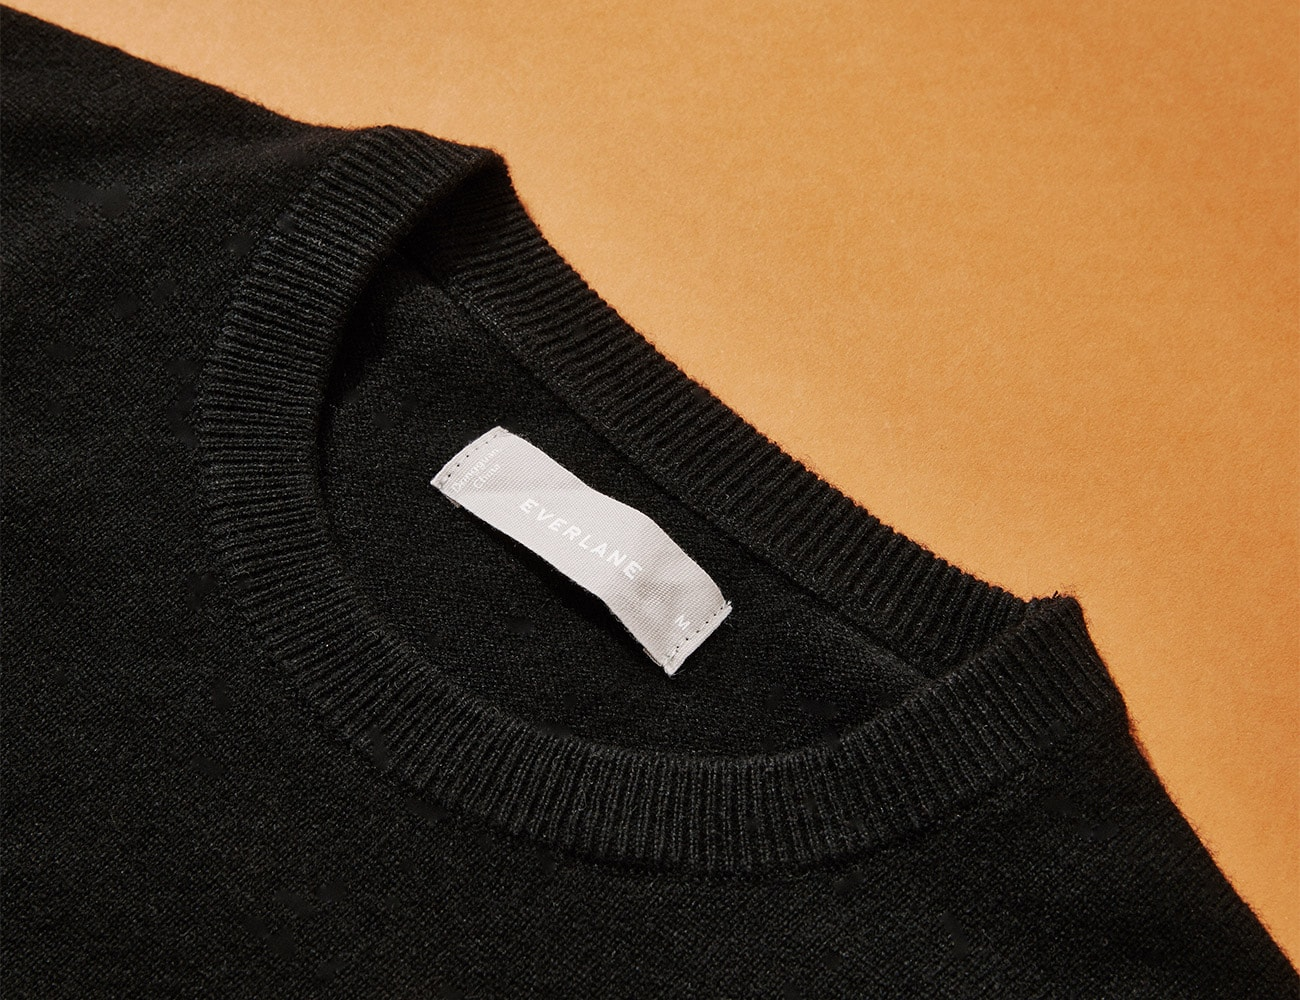 dca0e53ce3d88 The-Best-Cashmere-Sweaters-for-100-or-Less-